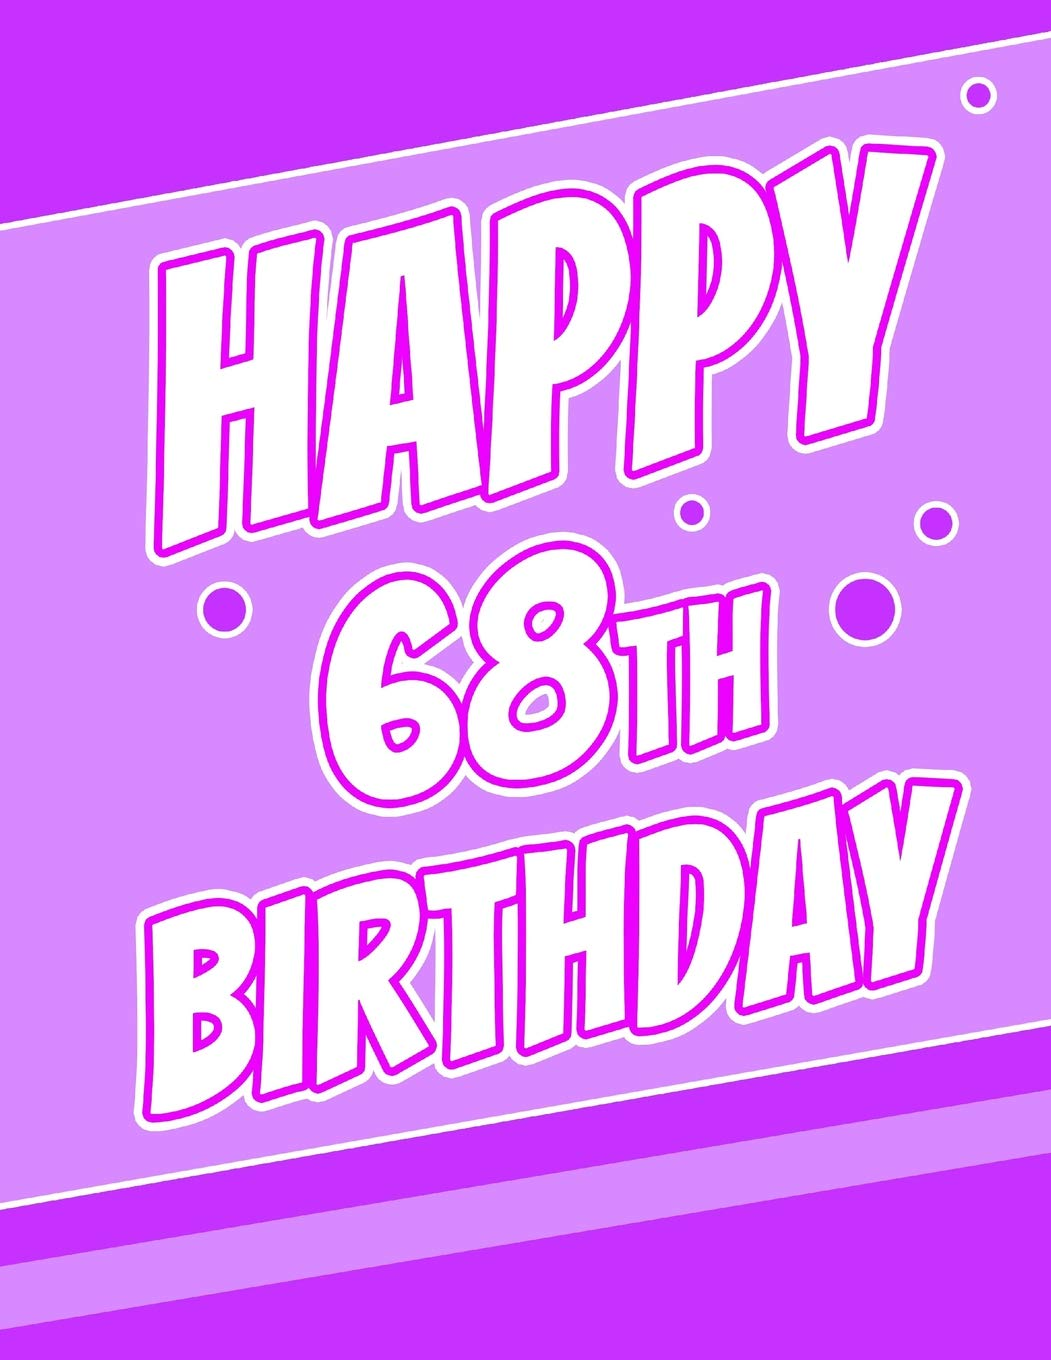 Happy 68th Birthday Better Than A Card Large Print Discreet Internet Website Username And Password Journal Or Organizer In Poppin Purple